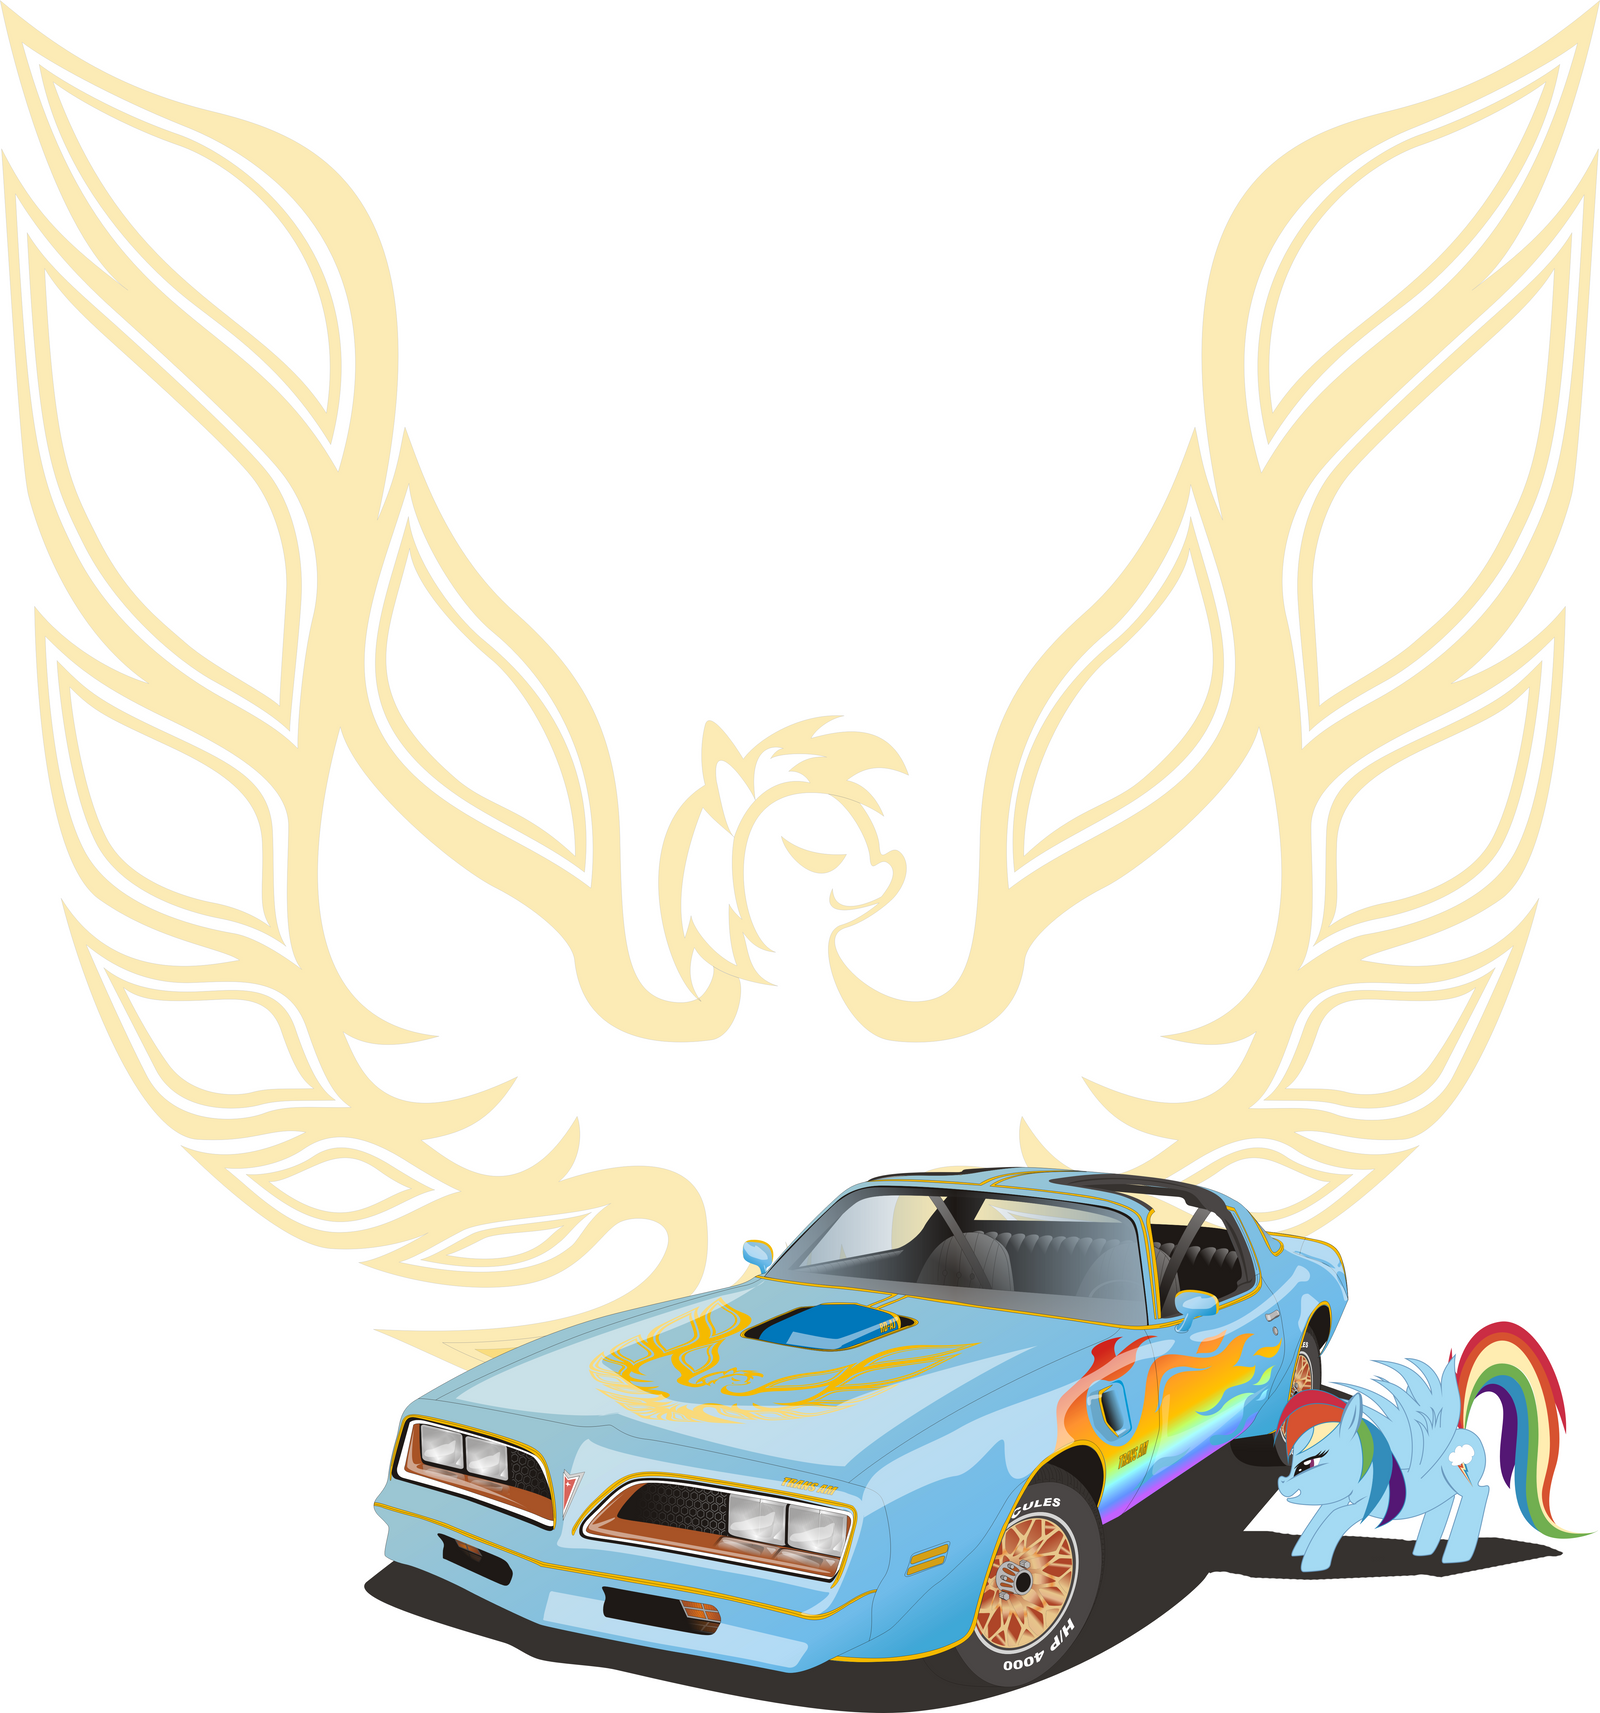 Trans Am 1977 Rainbow edition by 3Maxa